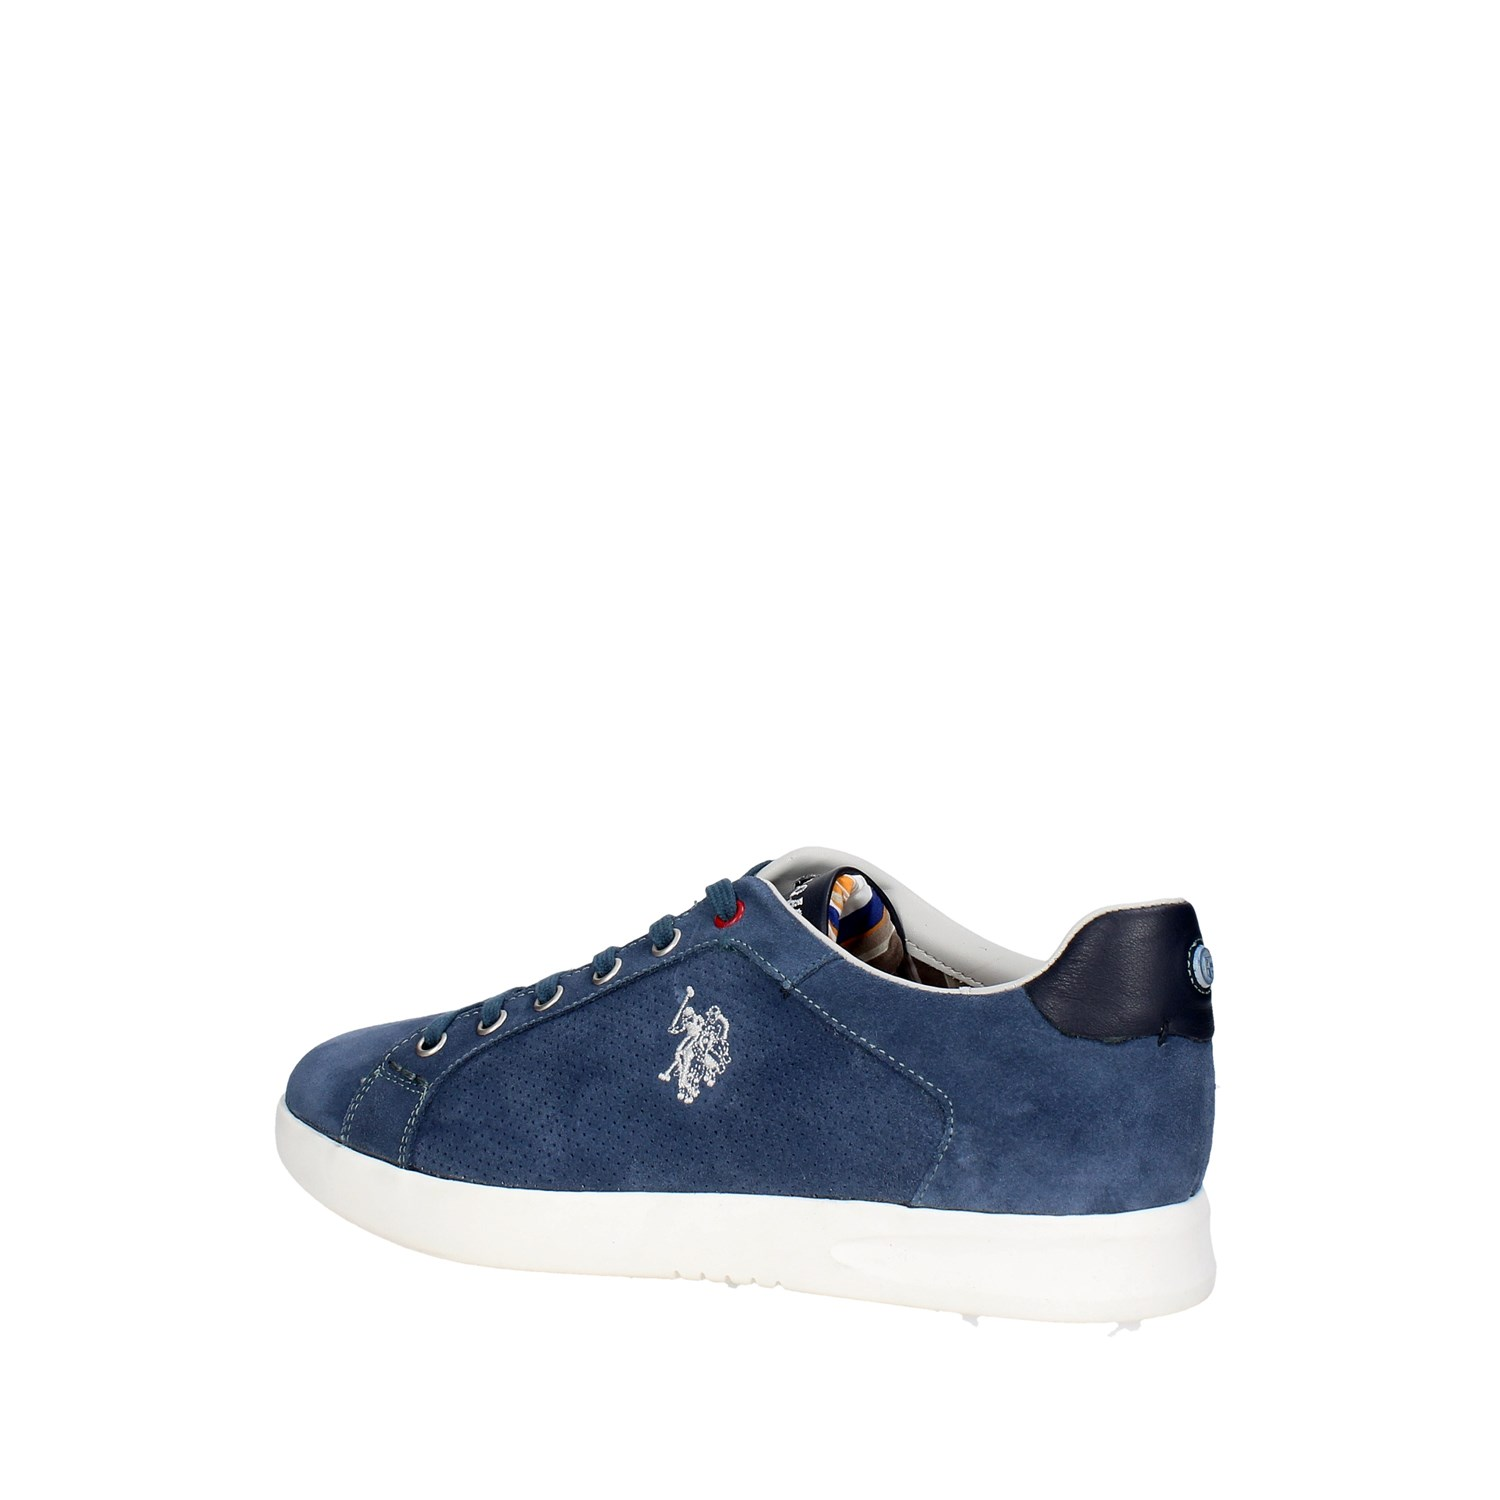 Low Sneakers DYRON4042S7/S1 Man U.s. Polo Assn DYRON4042S7/S1 Sneakers Spring/Summer 7db3bc